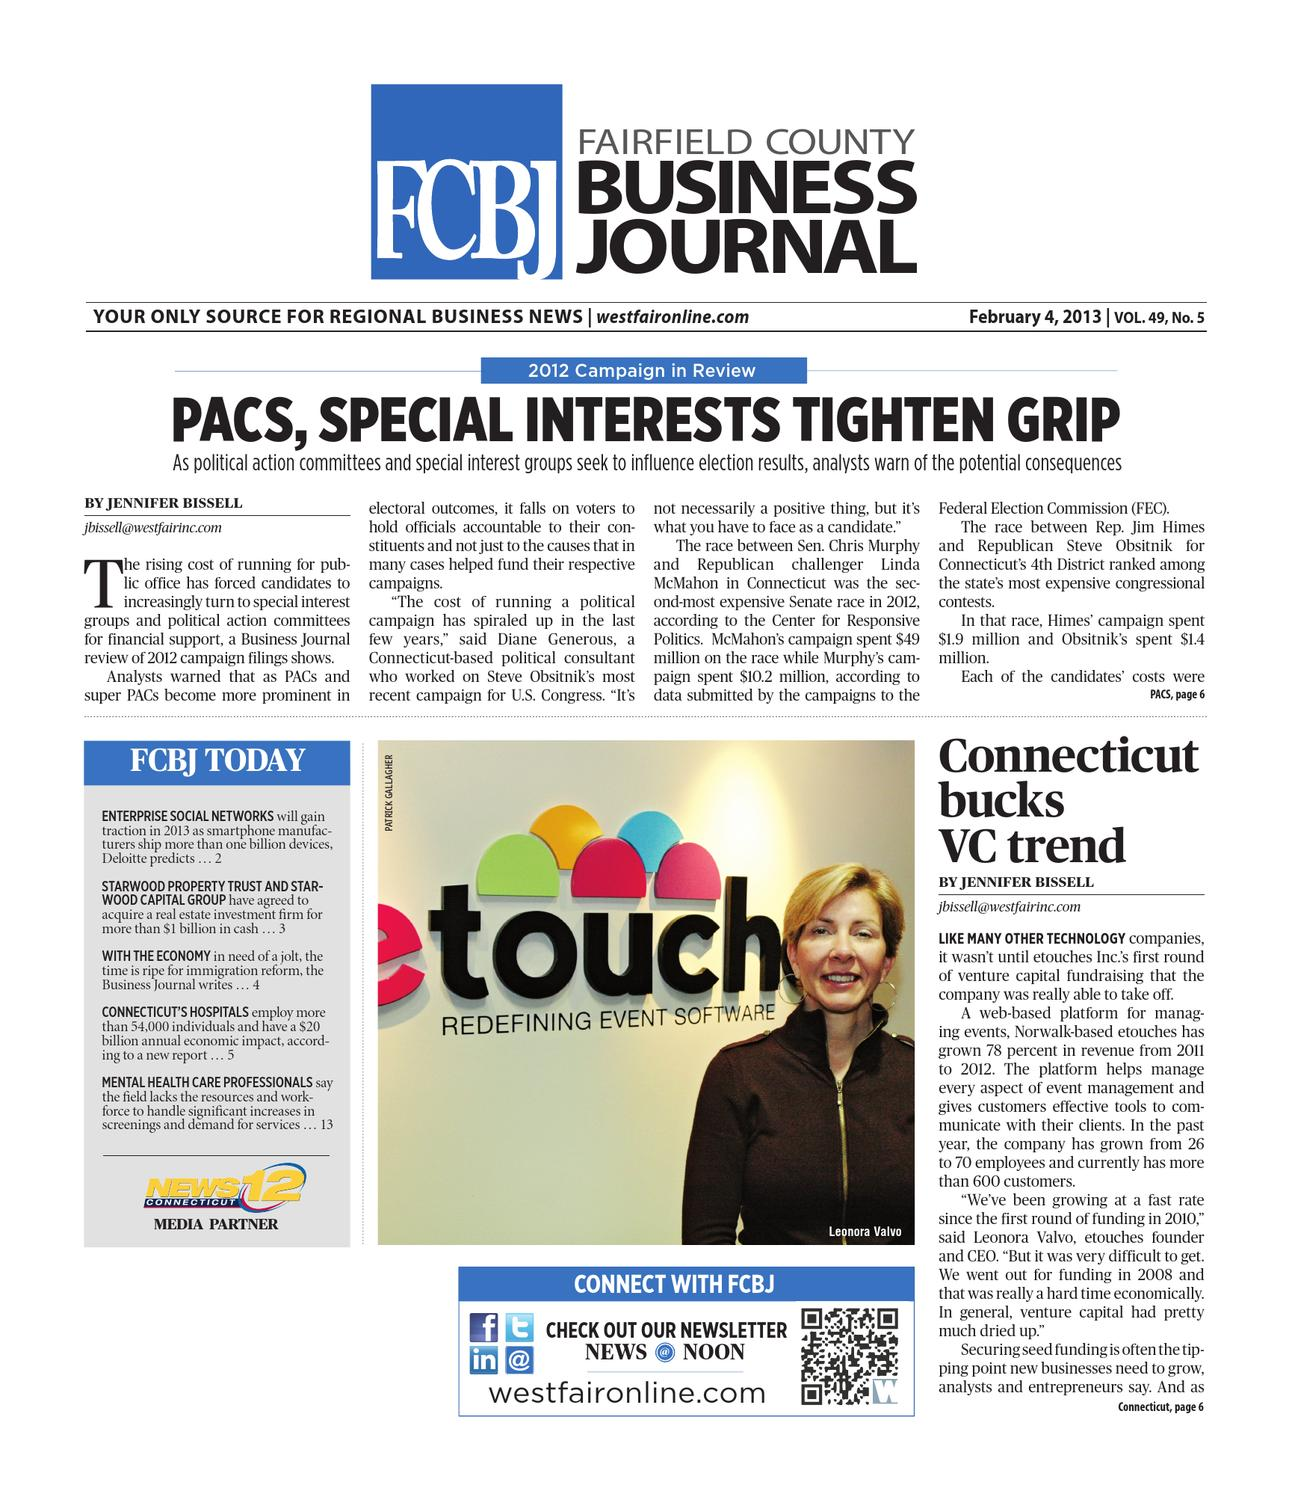 Fairfield County Business Journal - 020413 by Wag Magazine